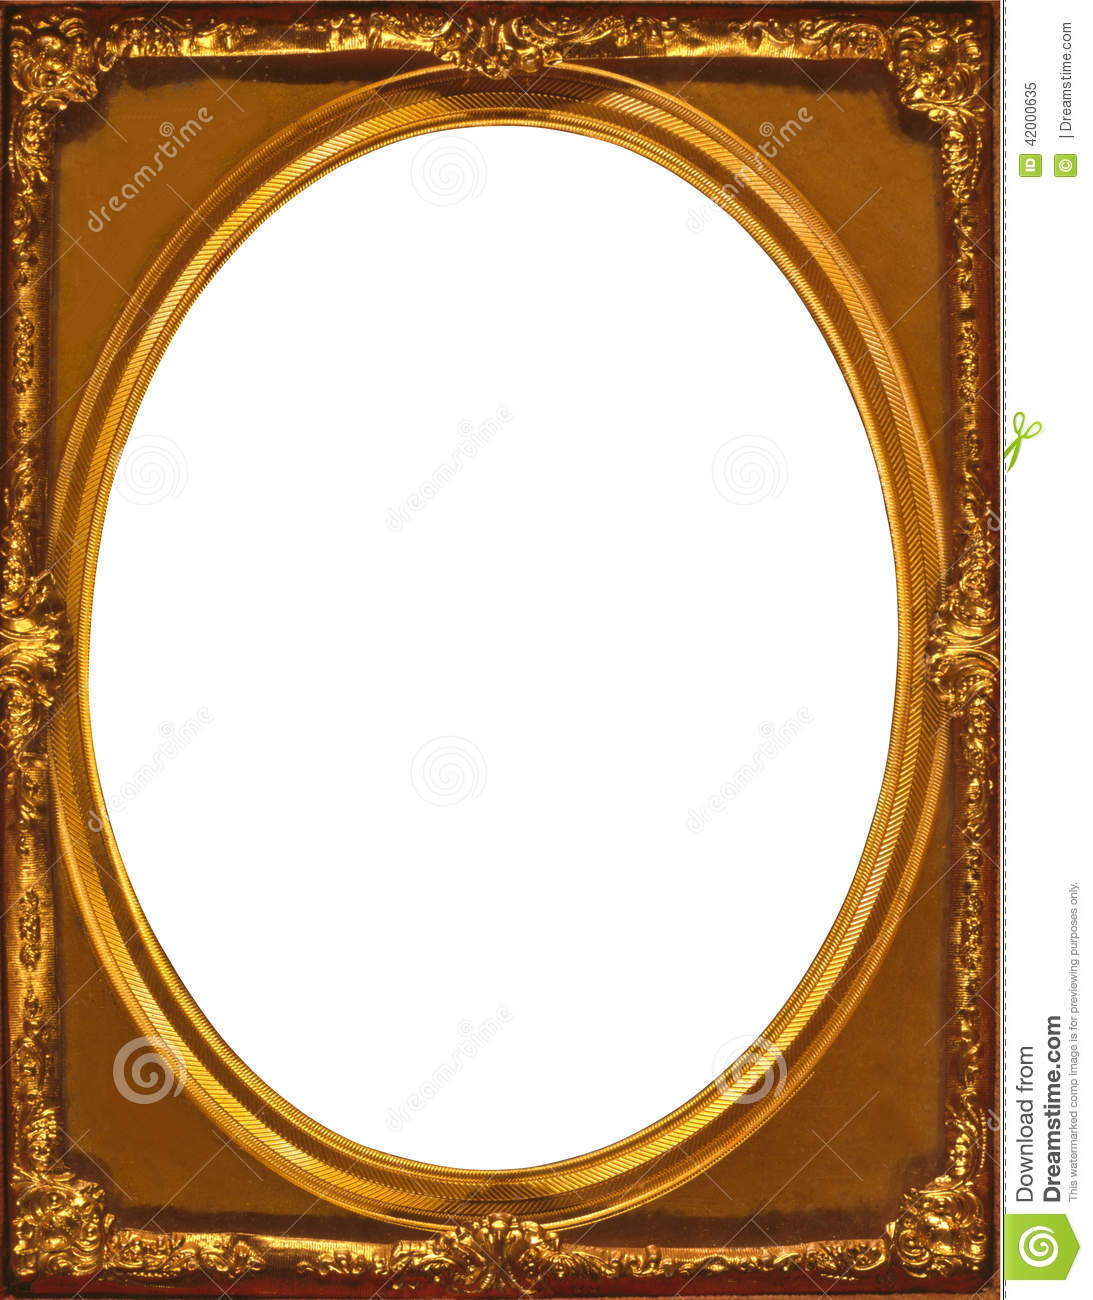 Gold Multilayered Frame Inner Oval Within A Rectangular